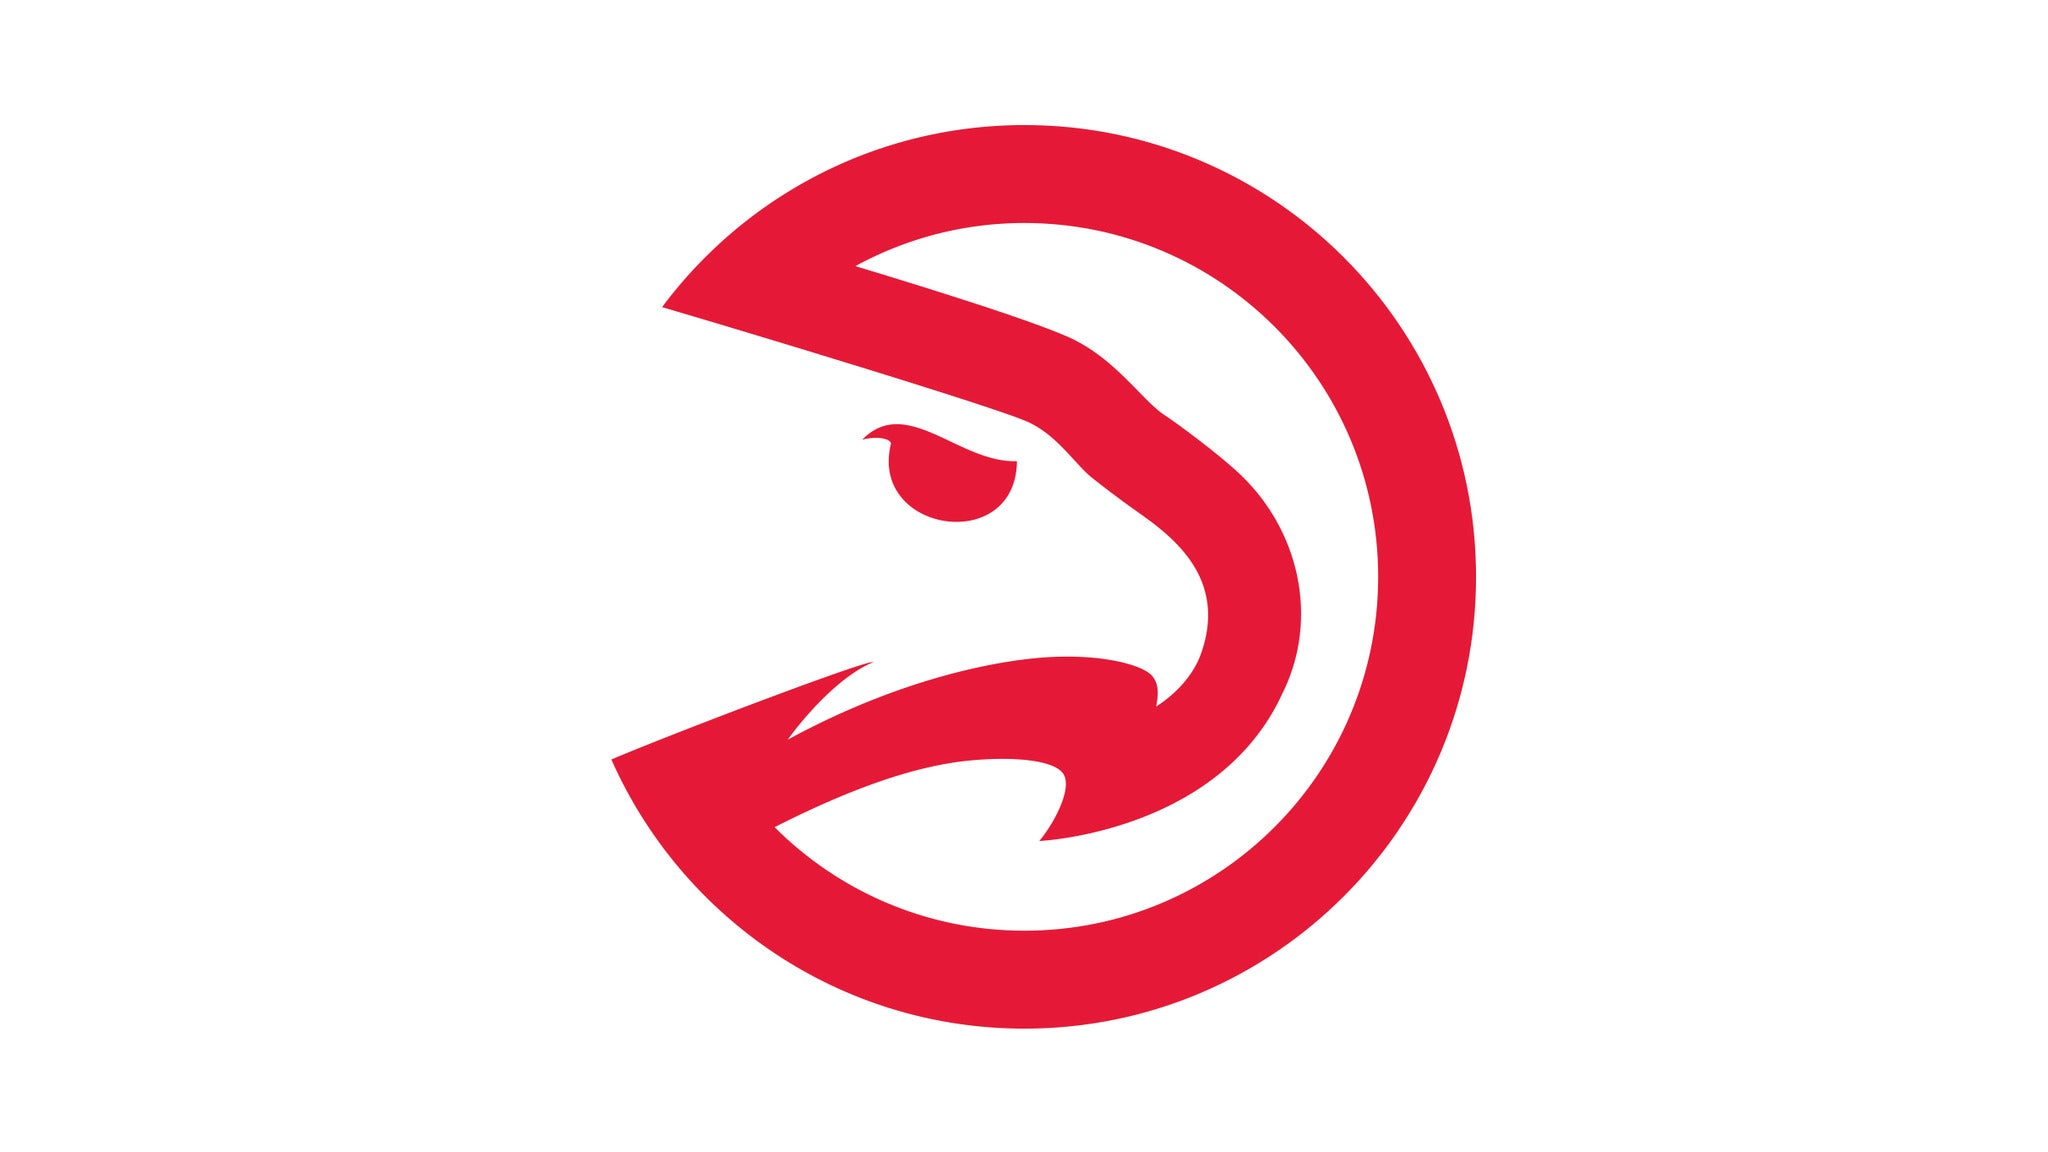 Atlanta Hawks vs. Chicago Bulls at Philips Arena